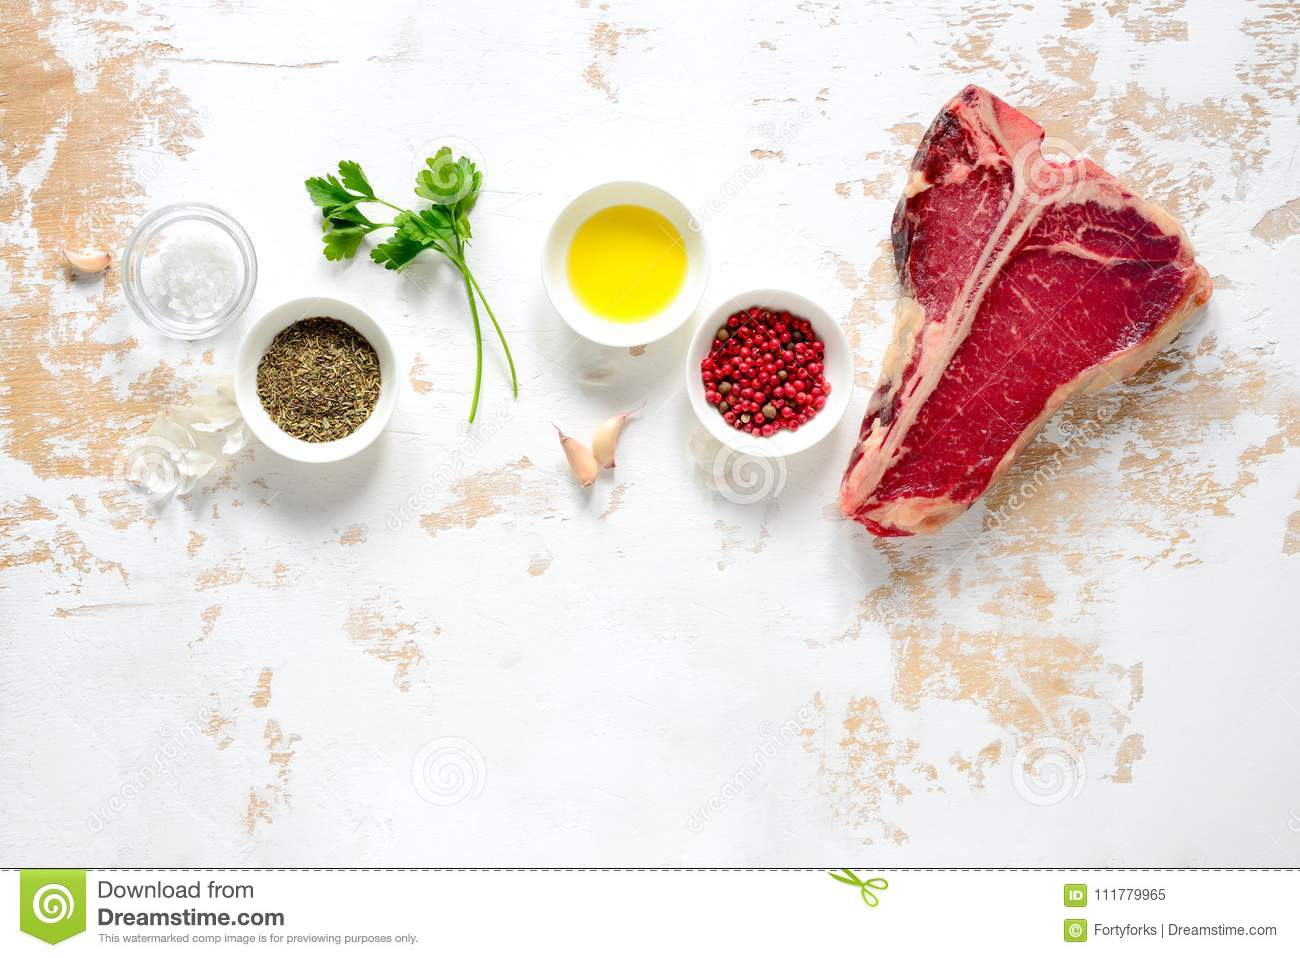 Raw t-bone steak and spices on a rustic kitchen table